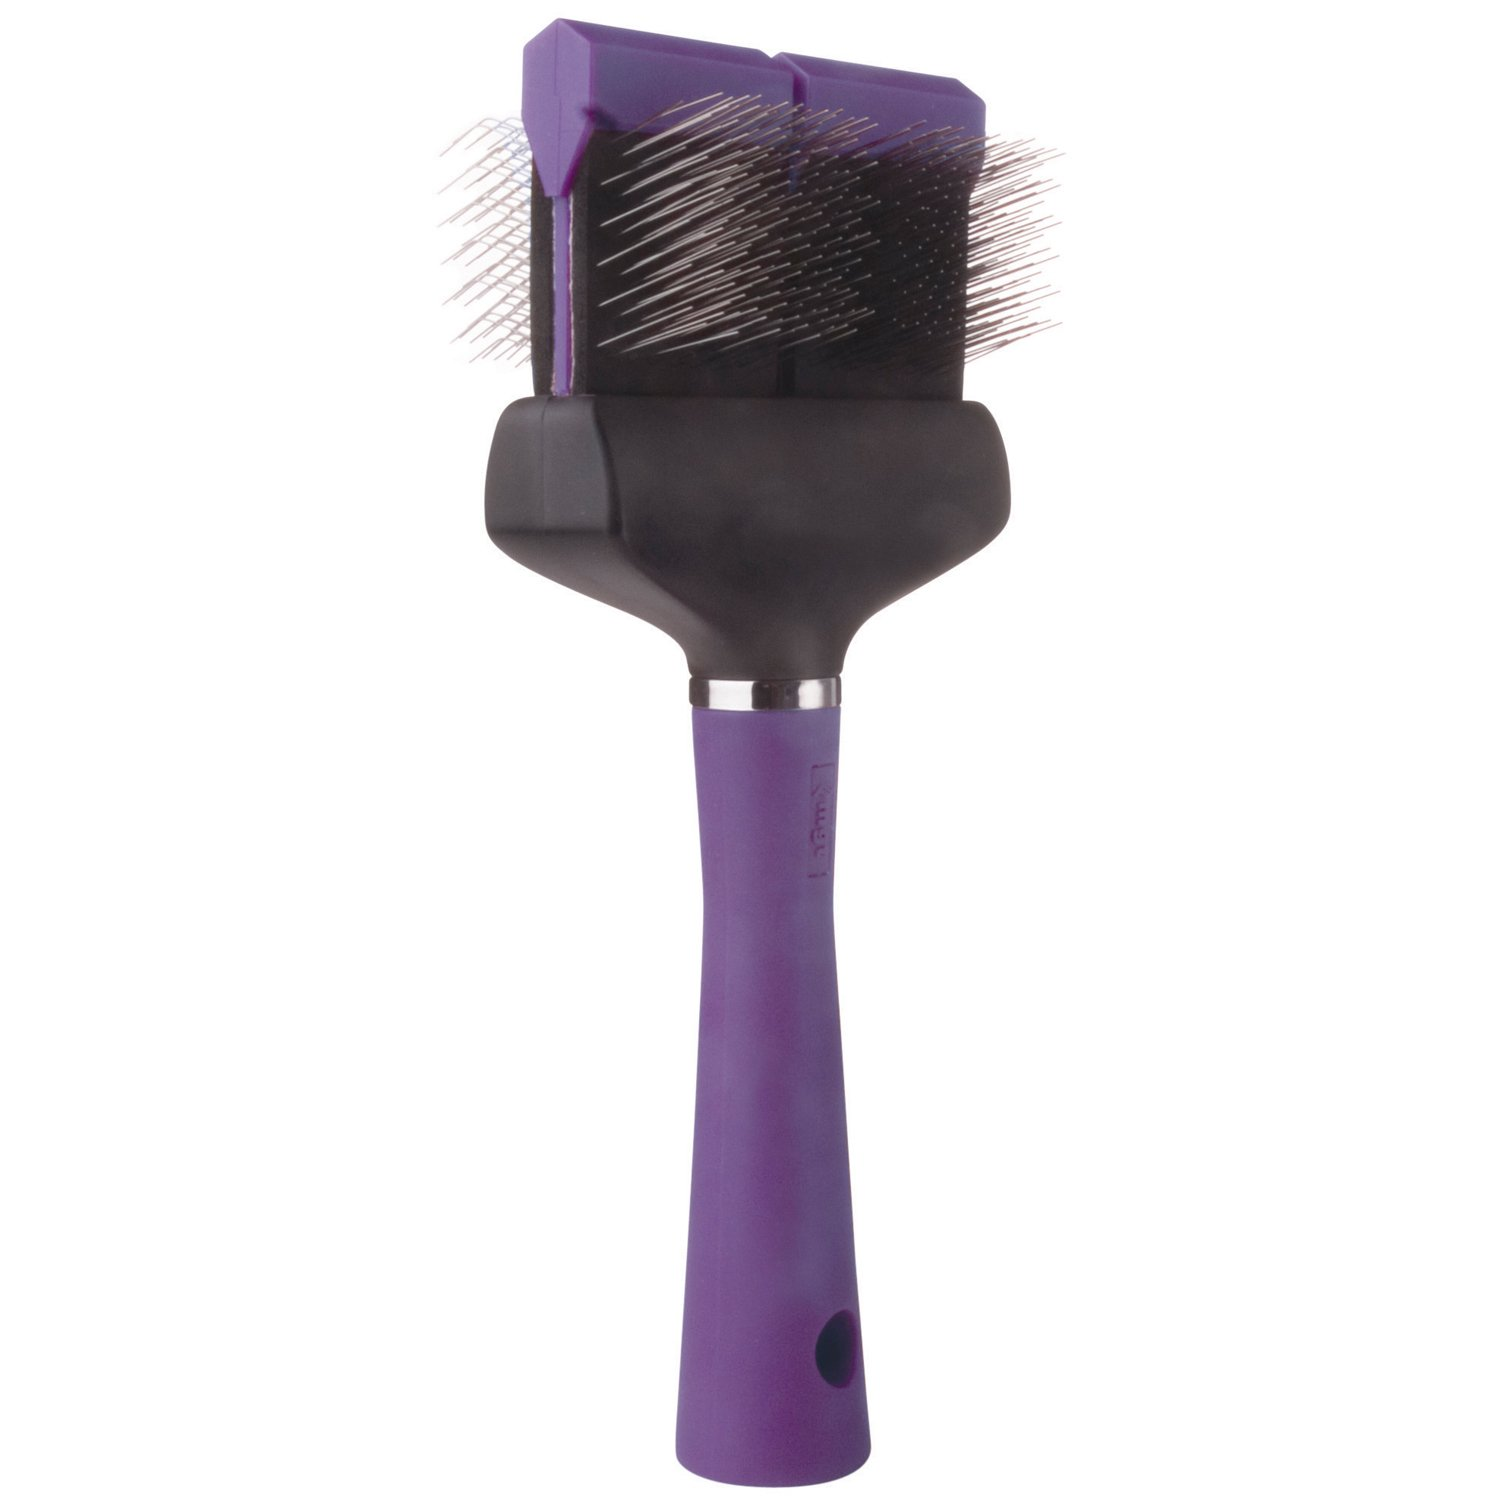 Master Grooming Tools Double-Sided Soft Flexible Slicker Brushes - Versatile Brushes for Grooming Dogs - Purple, 8''L x 4''W